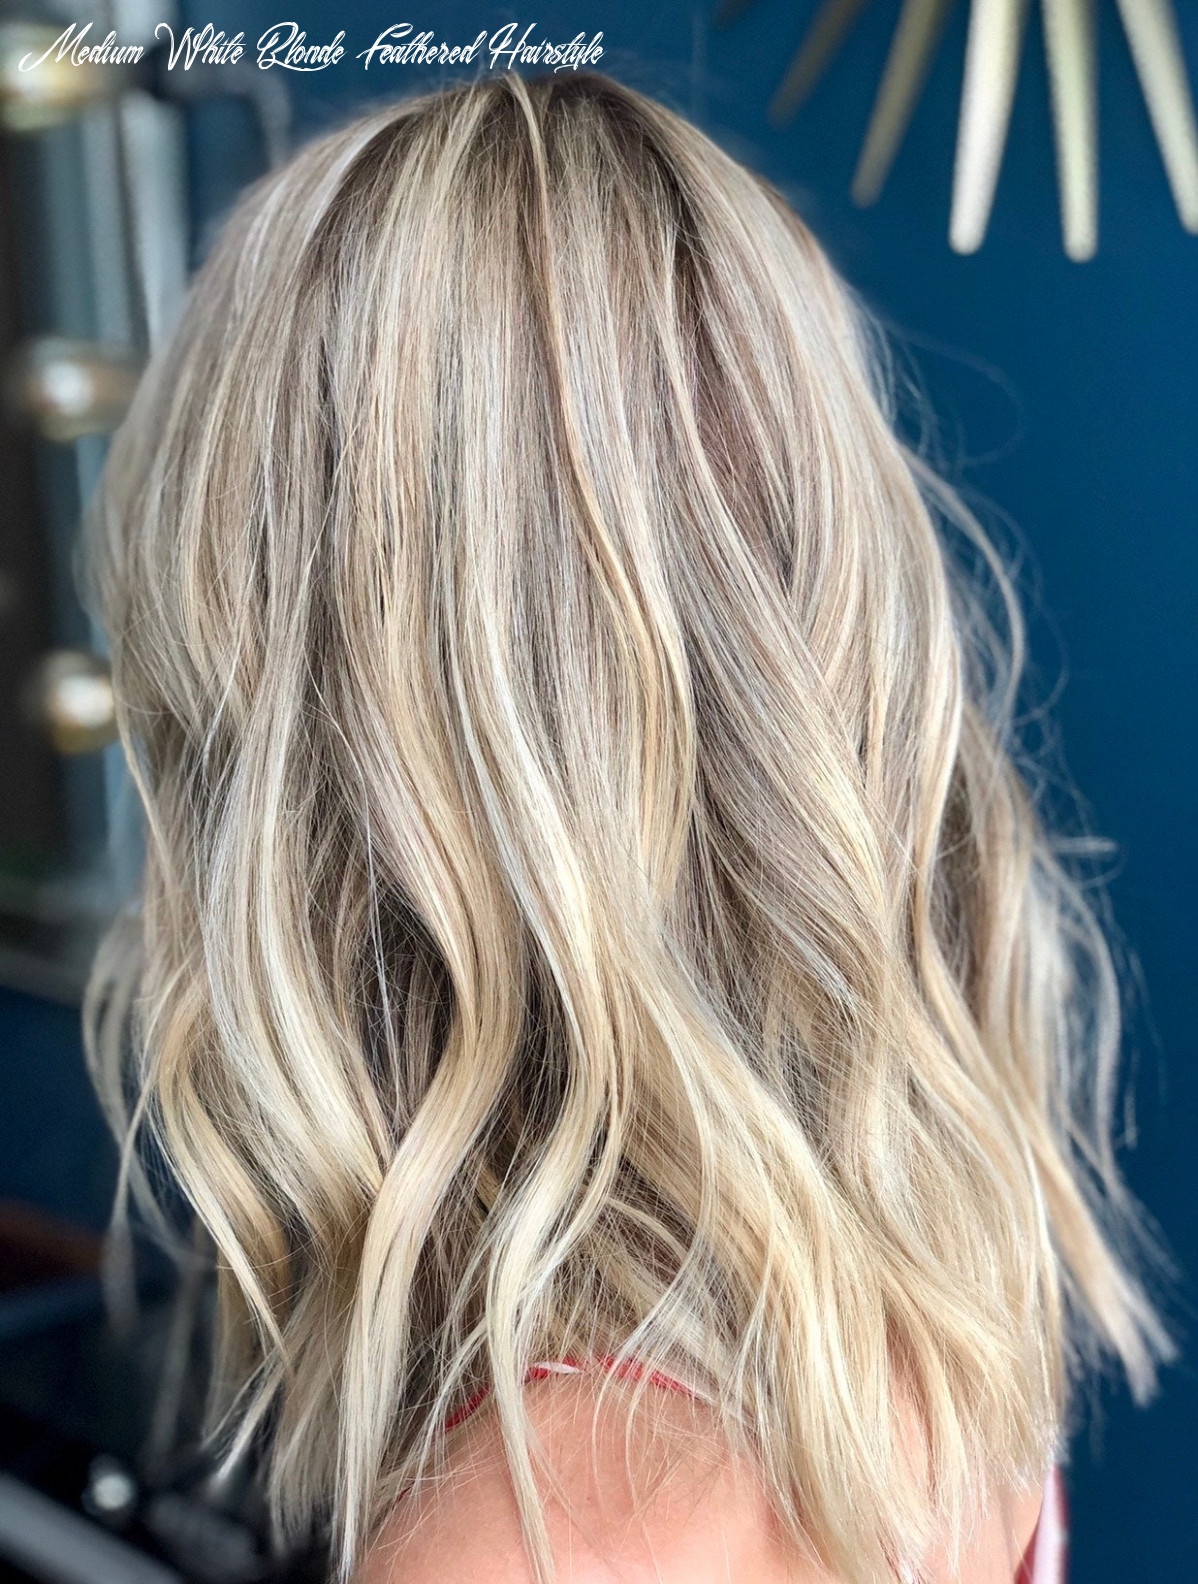 9 best blonde hair colors for 9 | glamour medium white blonde feathered hairstyle